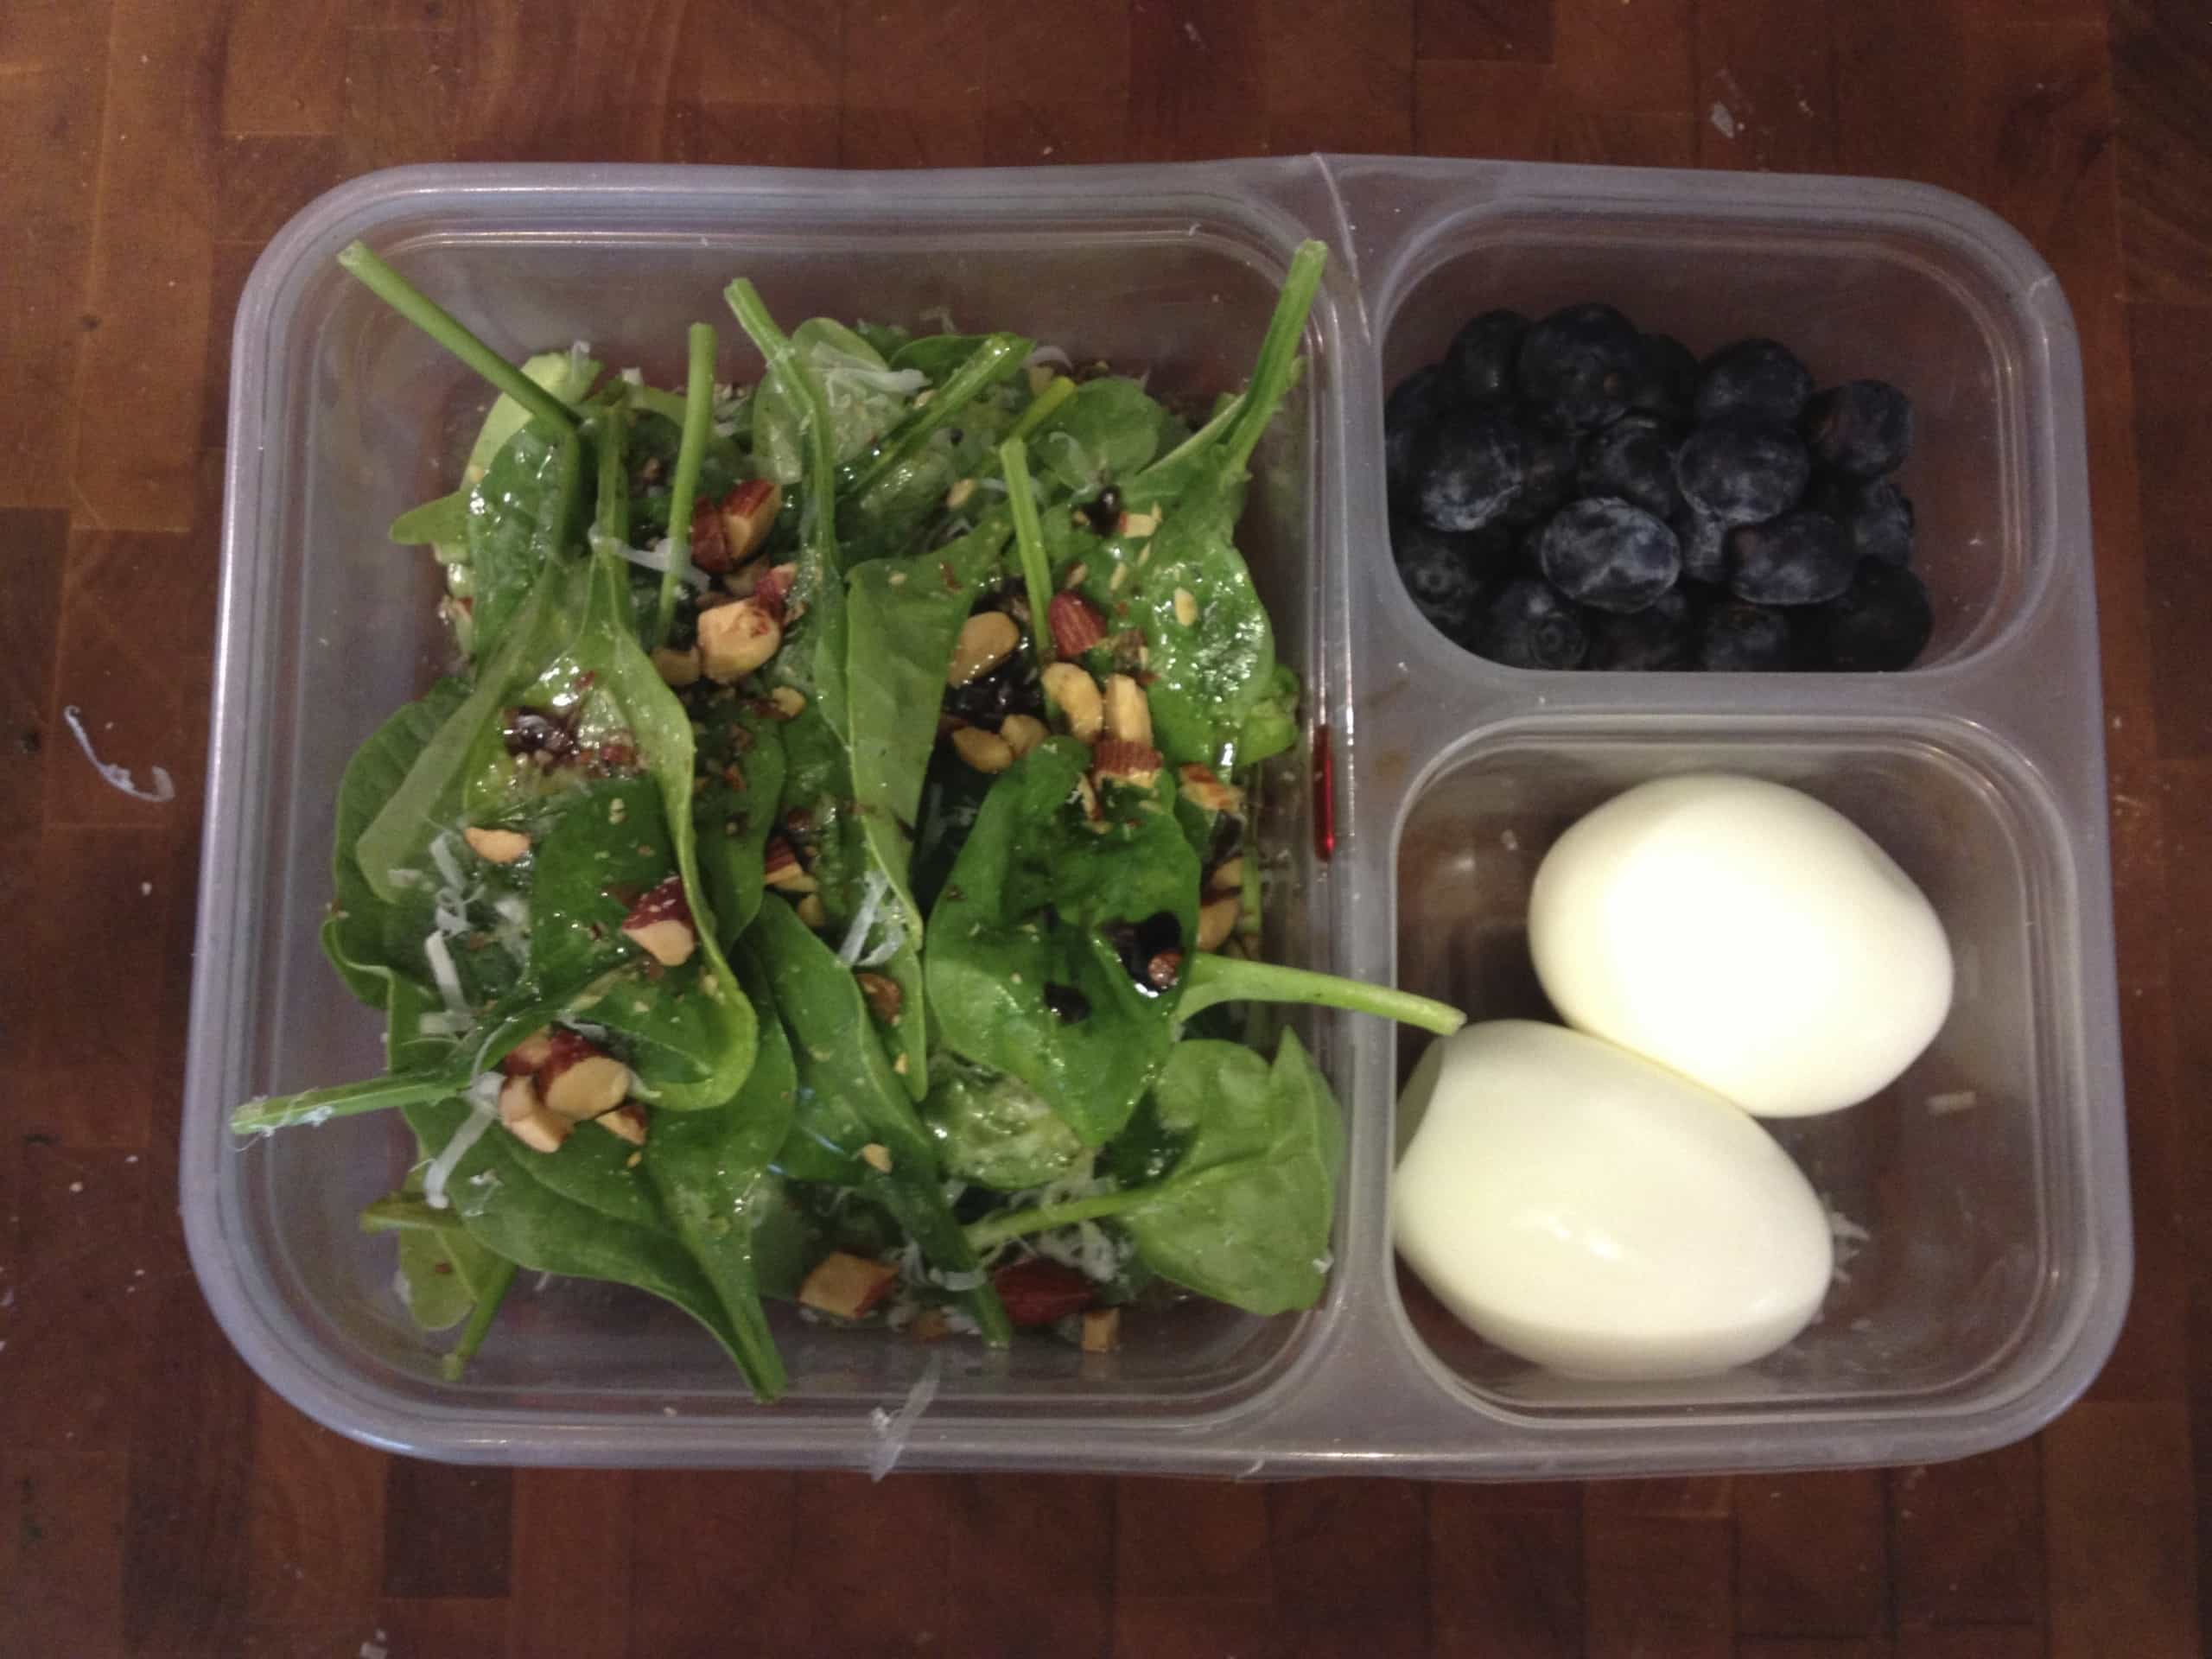 Brown bag lunch of salad, eggs, and blueberries